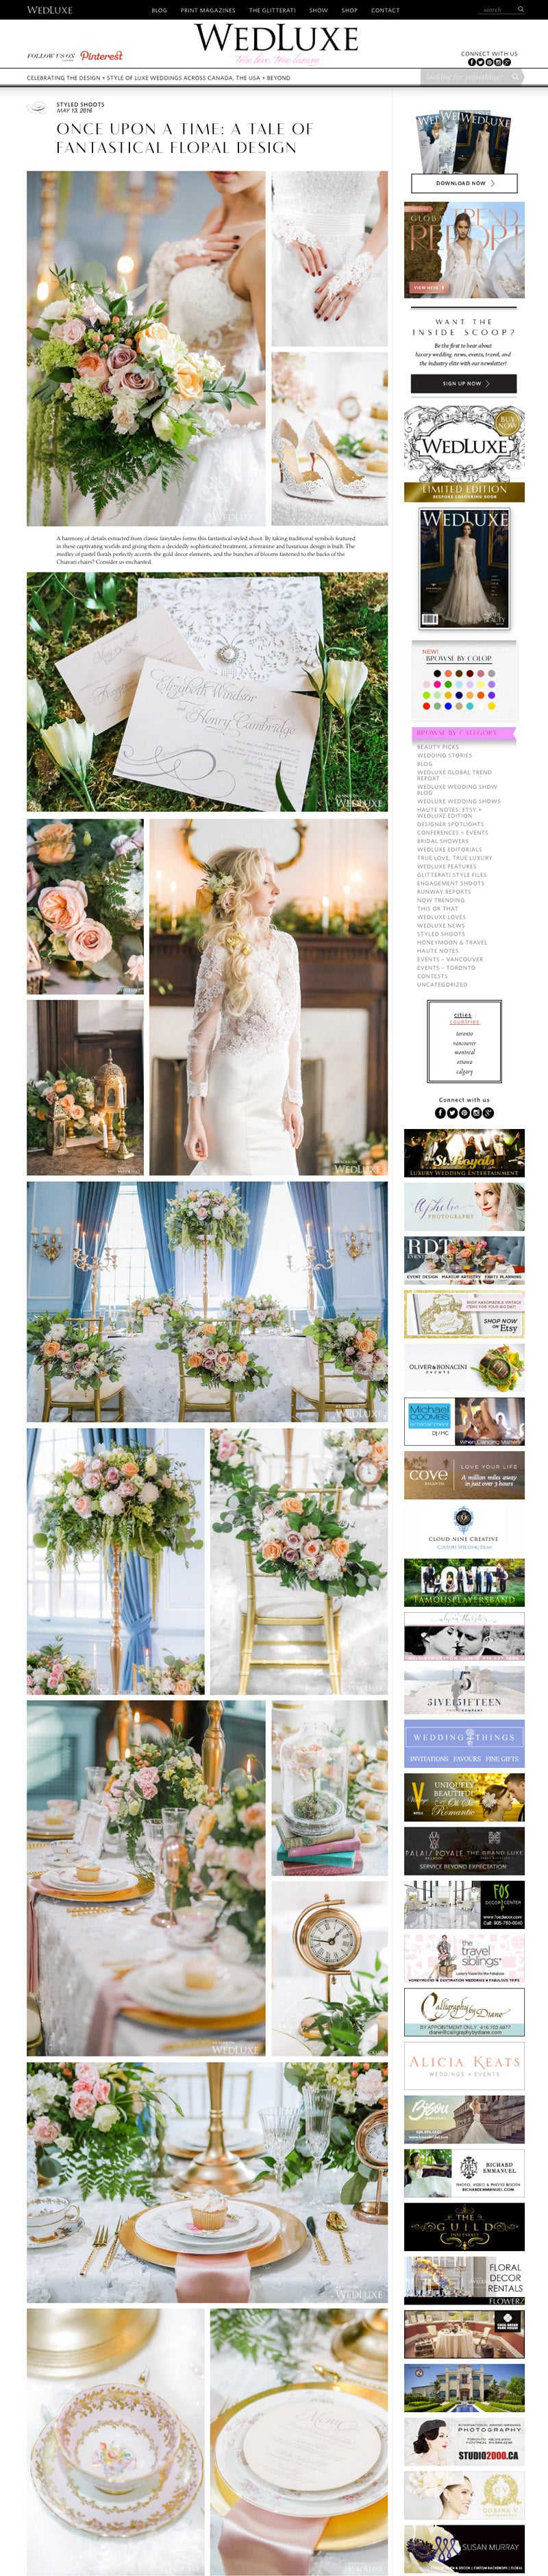 wedluxe-once-upon-a-time-disney-wedding-photos